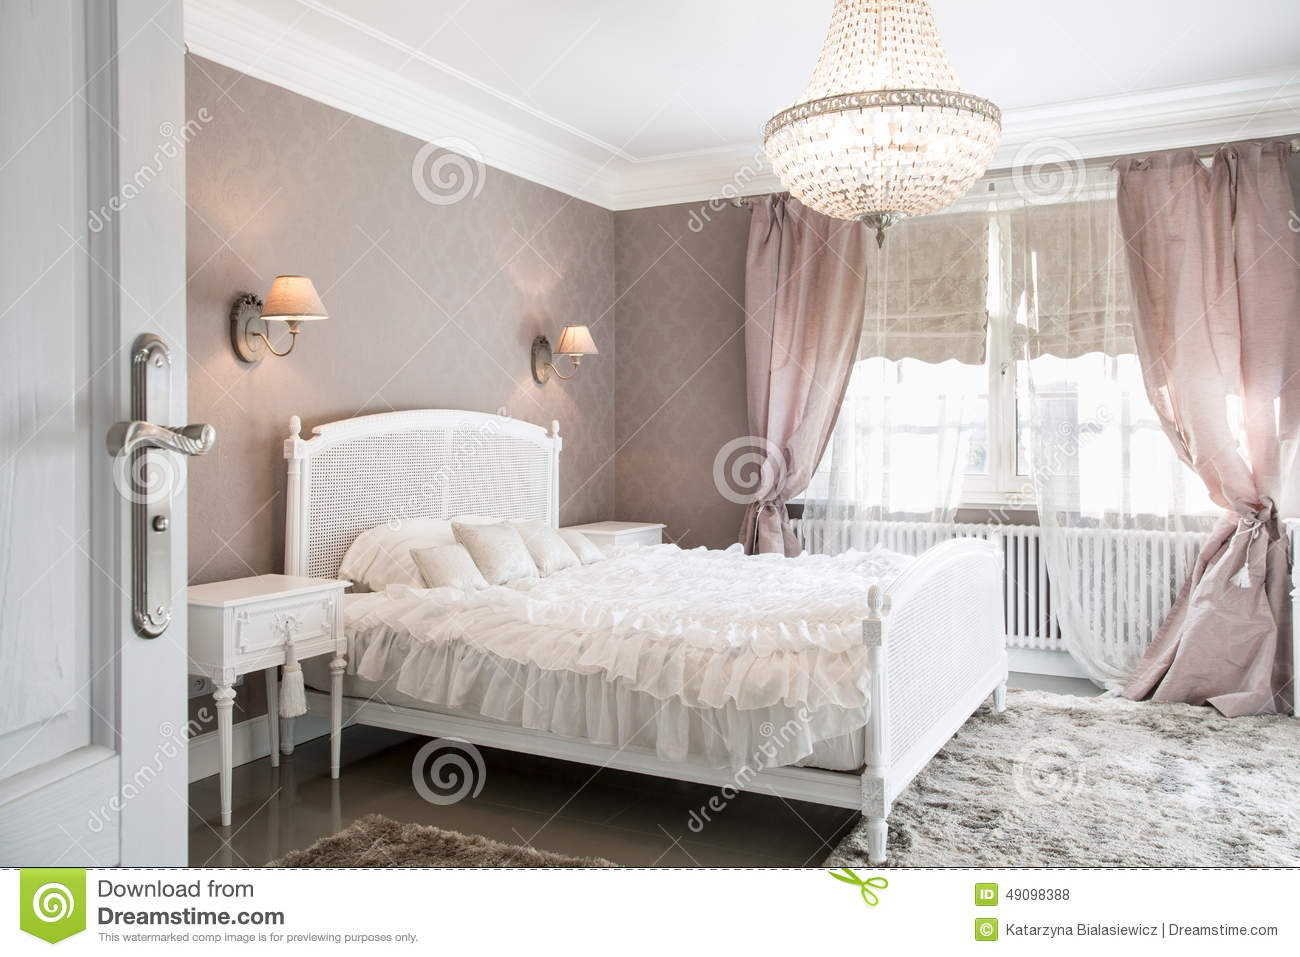 chambre coucher id ale pour la femme photo stock image 49098388. Black Bedroom Furniture Sets. Home Design Ideas